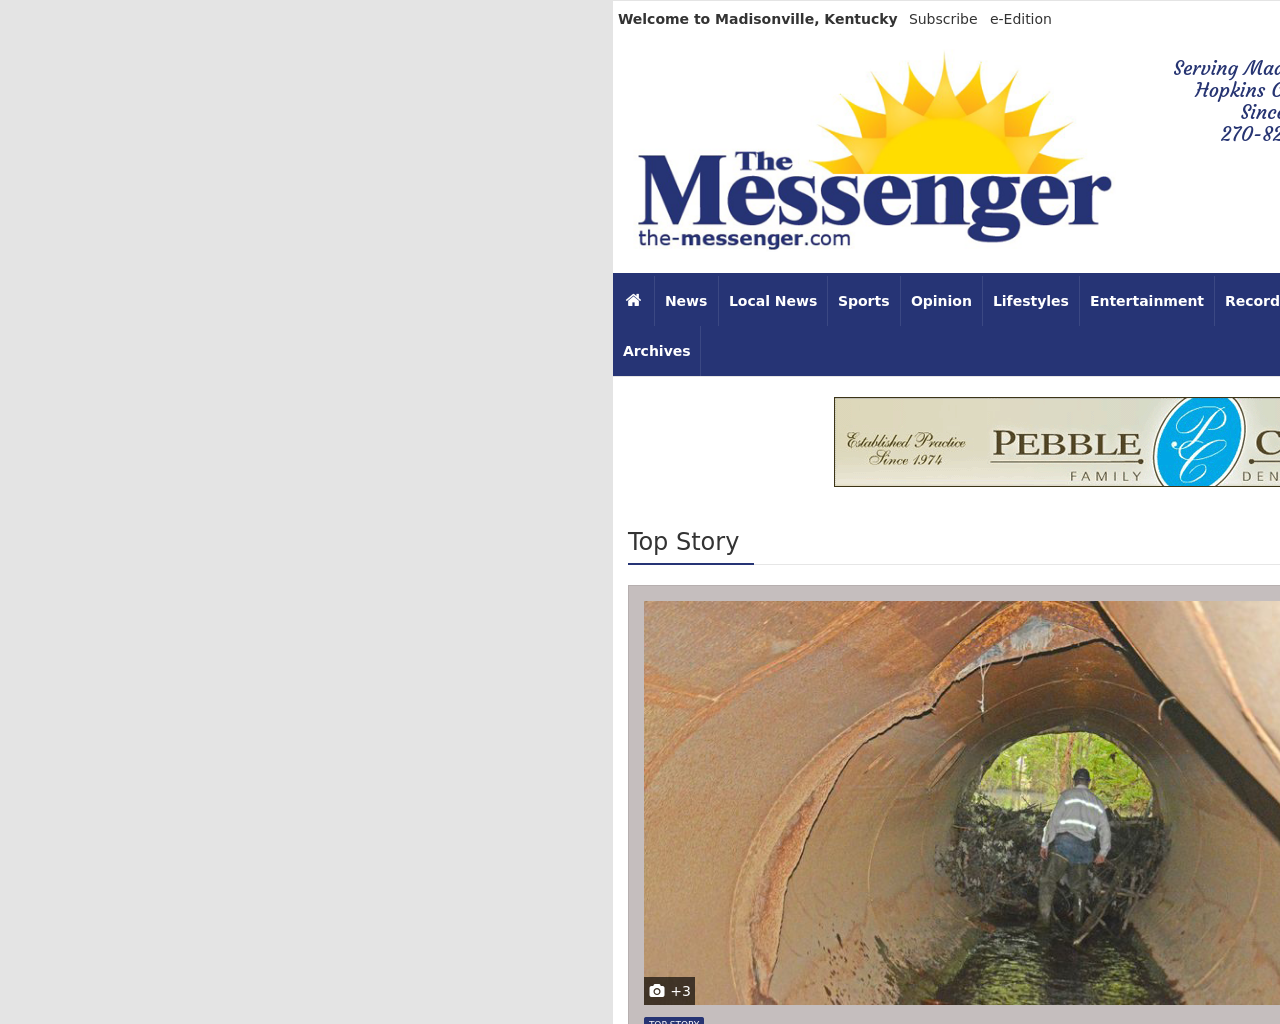 The-Messenger-Advertising-Reviews-Pricing